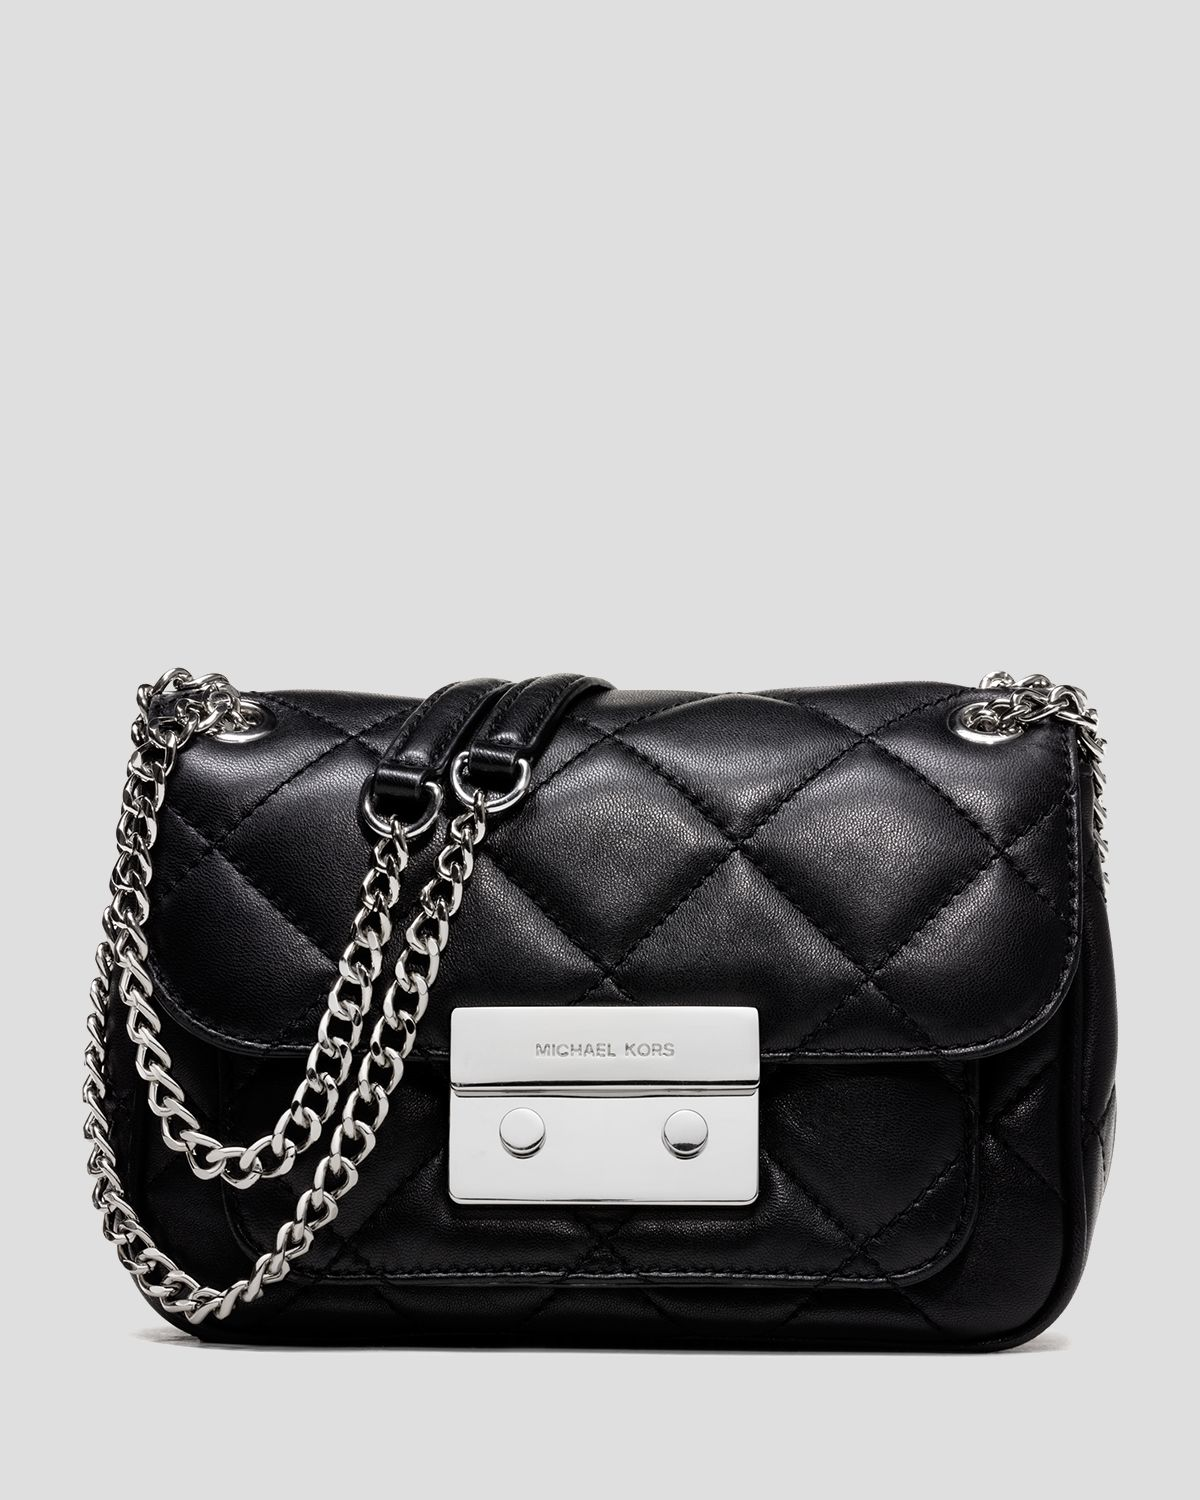 94c25bb4b15d52 Michael Kors Small Black Sloan Quilted Shoulder Bag | Stanford ...